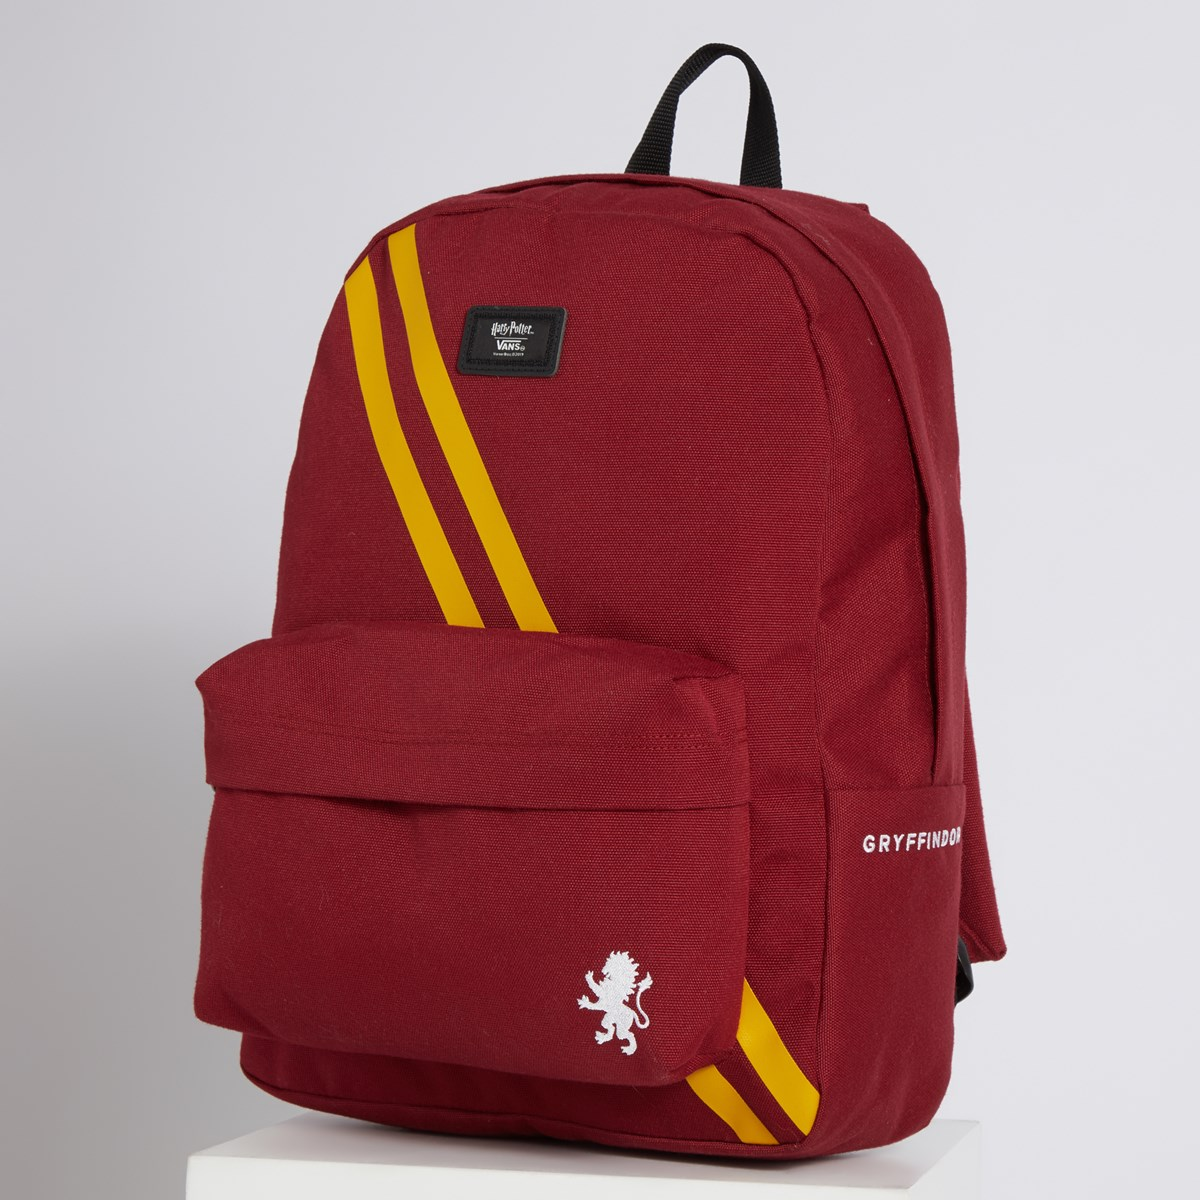 Harry Potter Gyffindor Old Skool III Backpack in Red